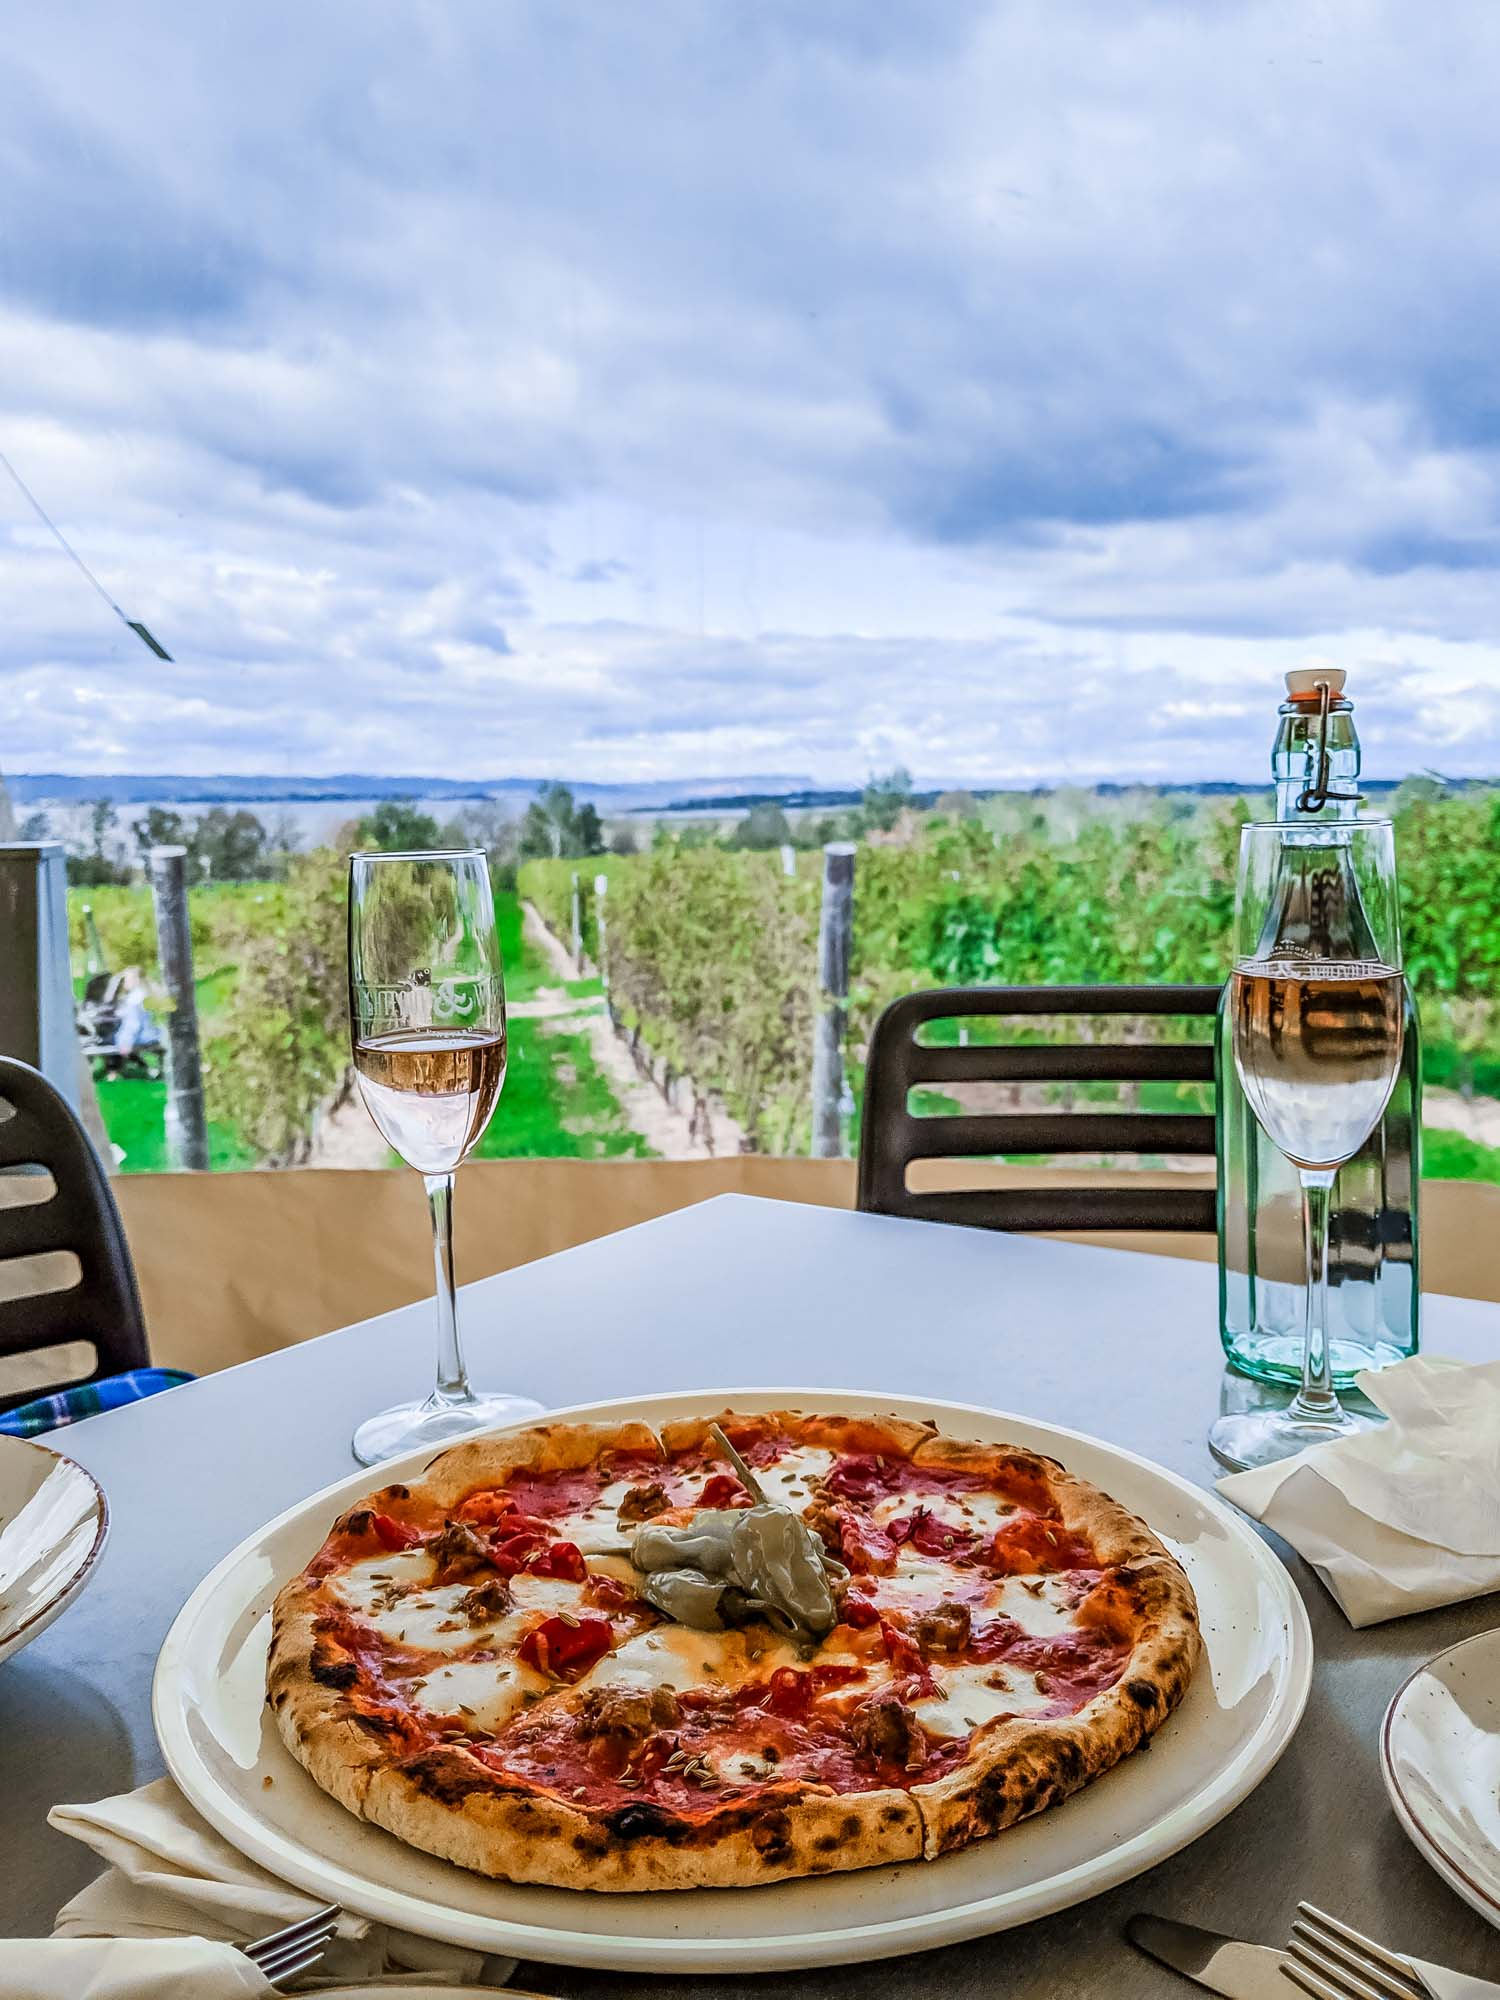 Pizza and a view at Lightfoot & Wolfville, a stop on the Wolfville wine bus.